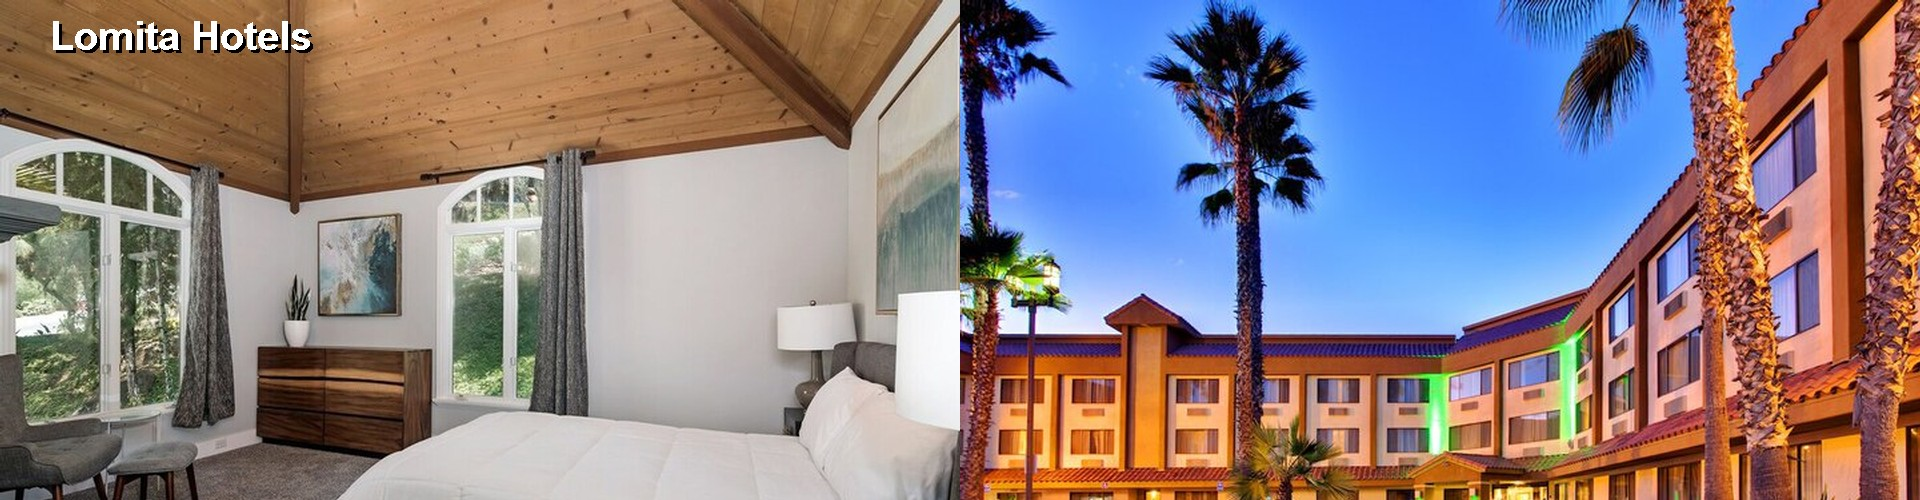 3 Best Hotels near Lomita